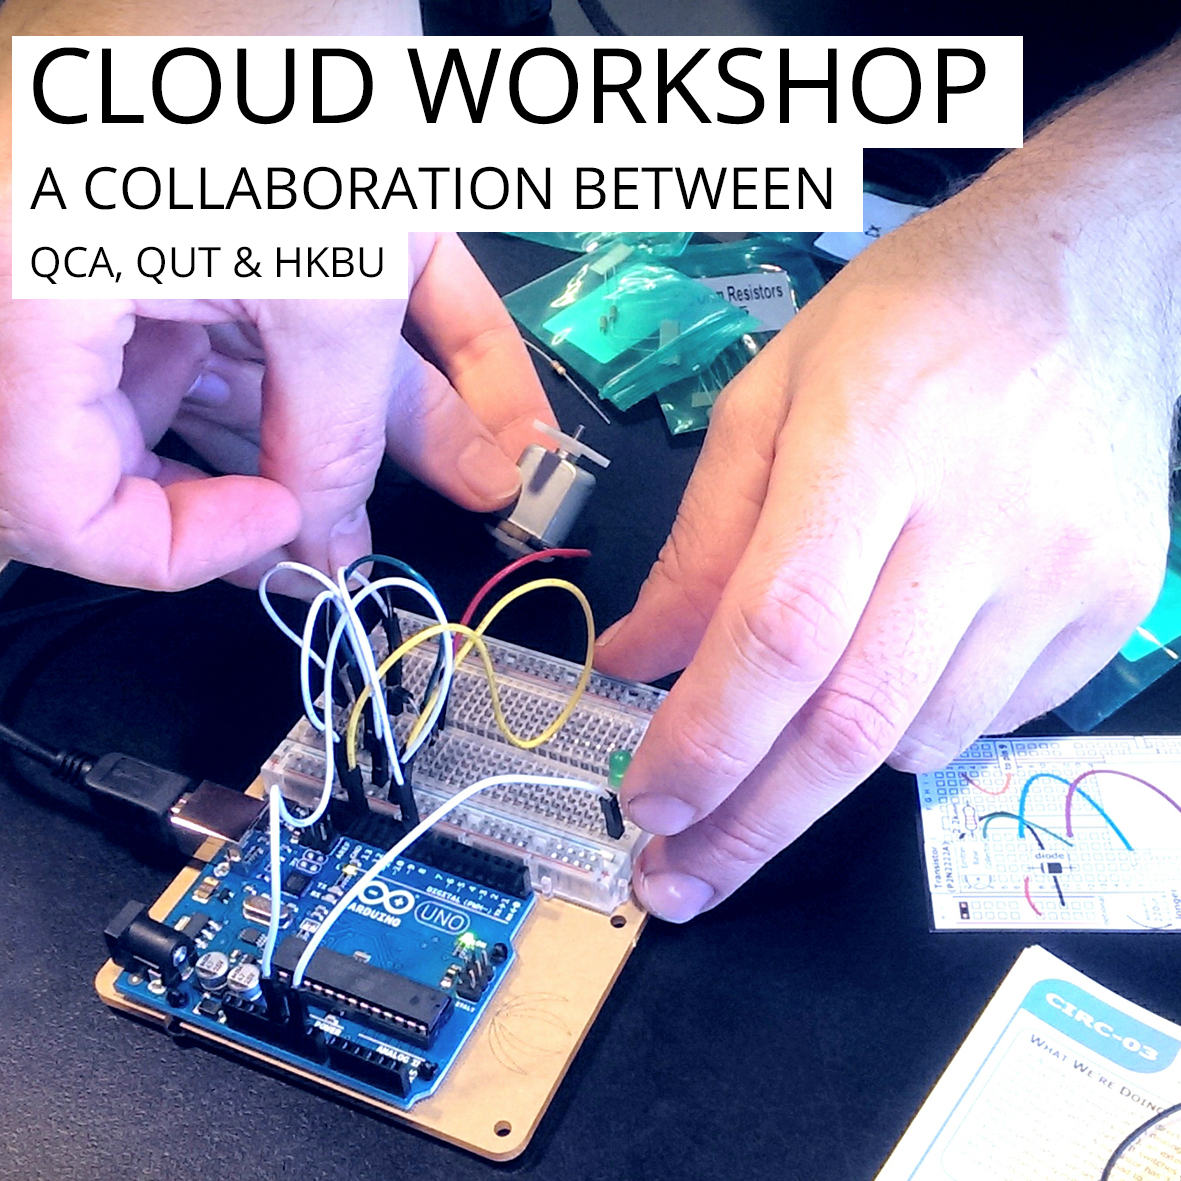 CLOUDWORKSHOP.jpg